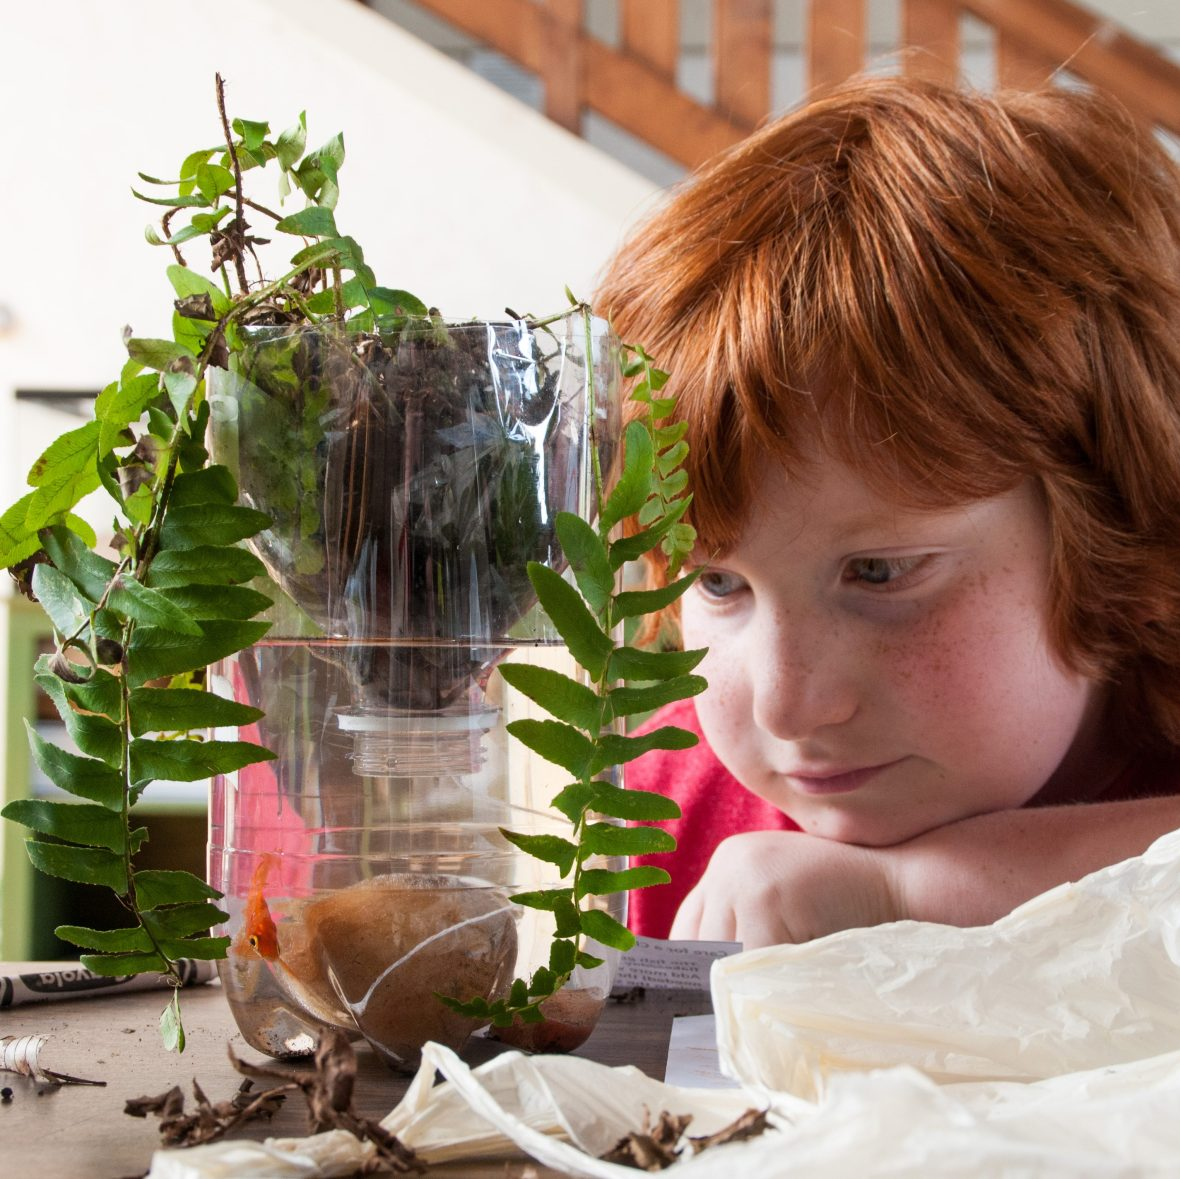 Creating an aquaponics system in Enrichment Programs for Students